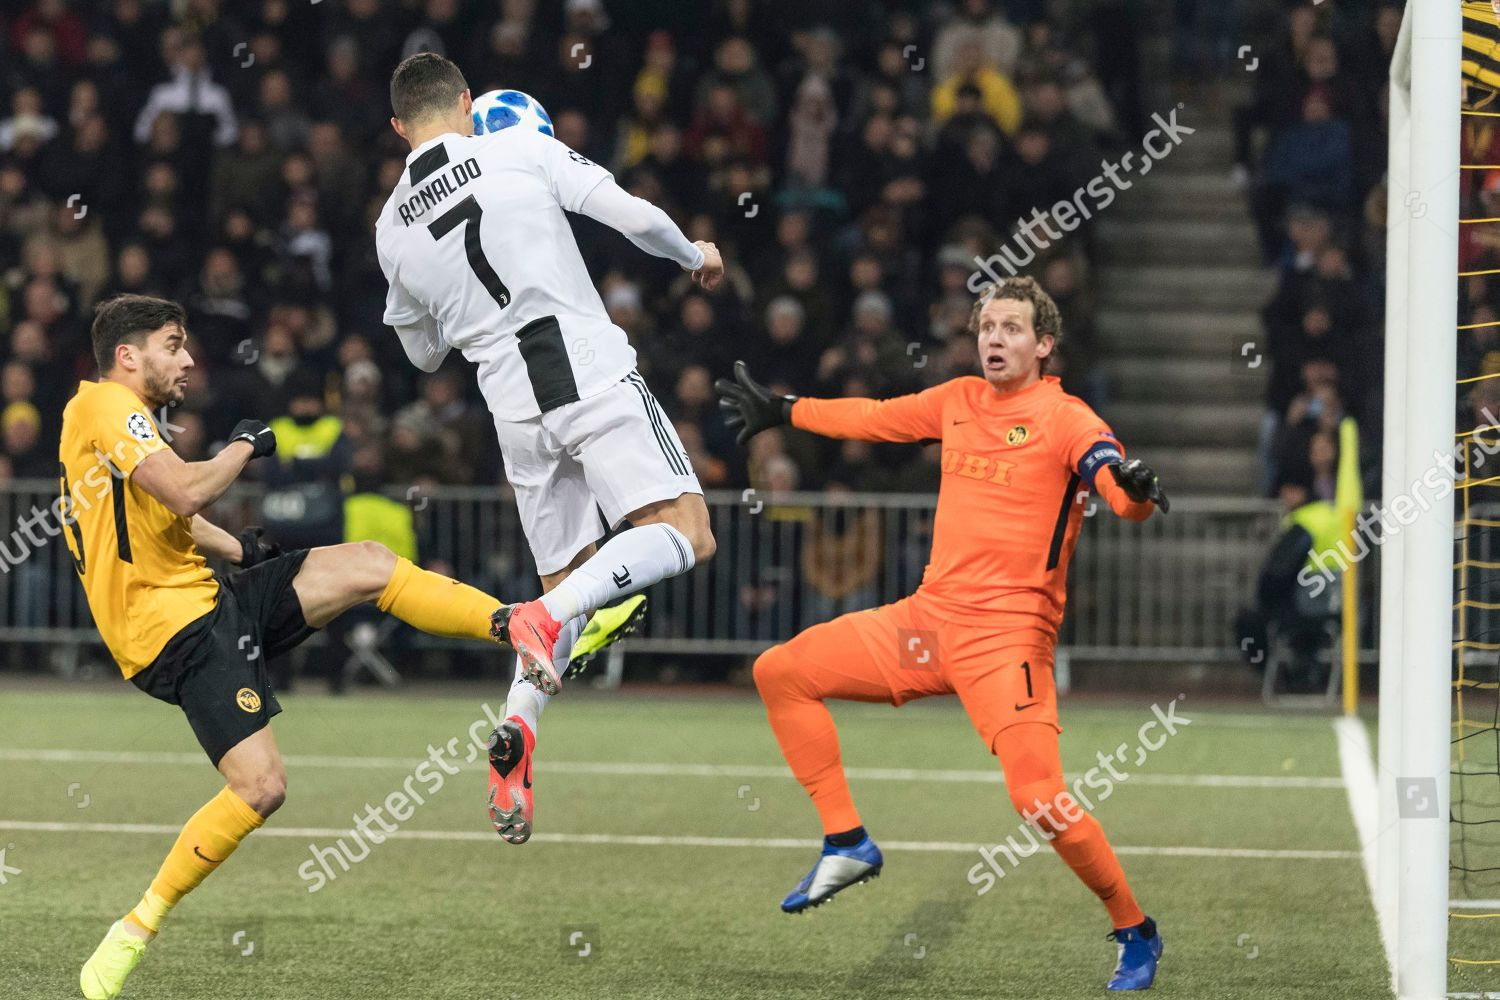 7a17740f2 Juventus Cristiano Ronaldo C action during UEFA Editorial Stock ...